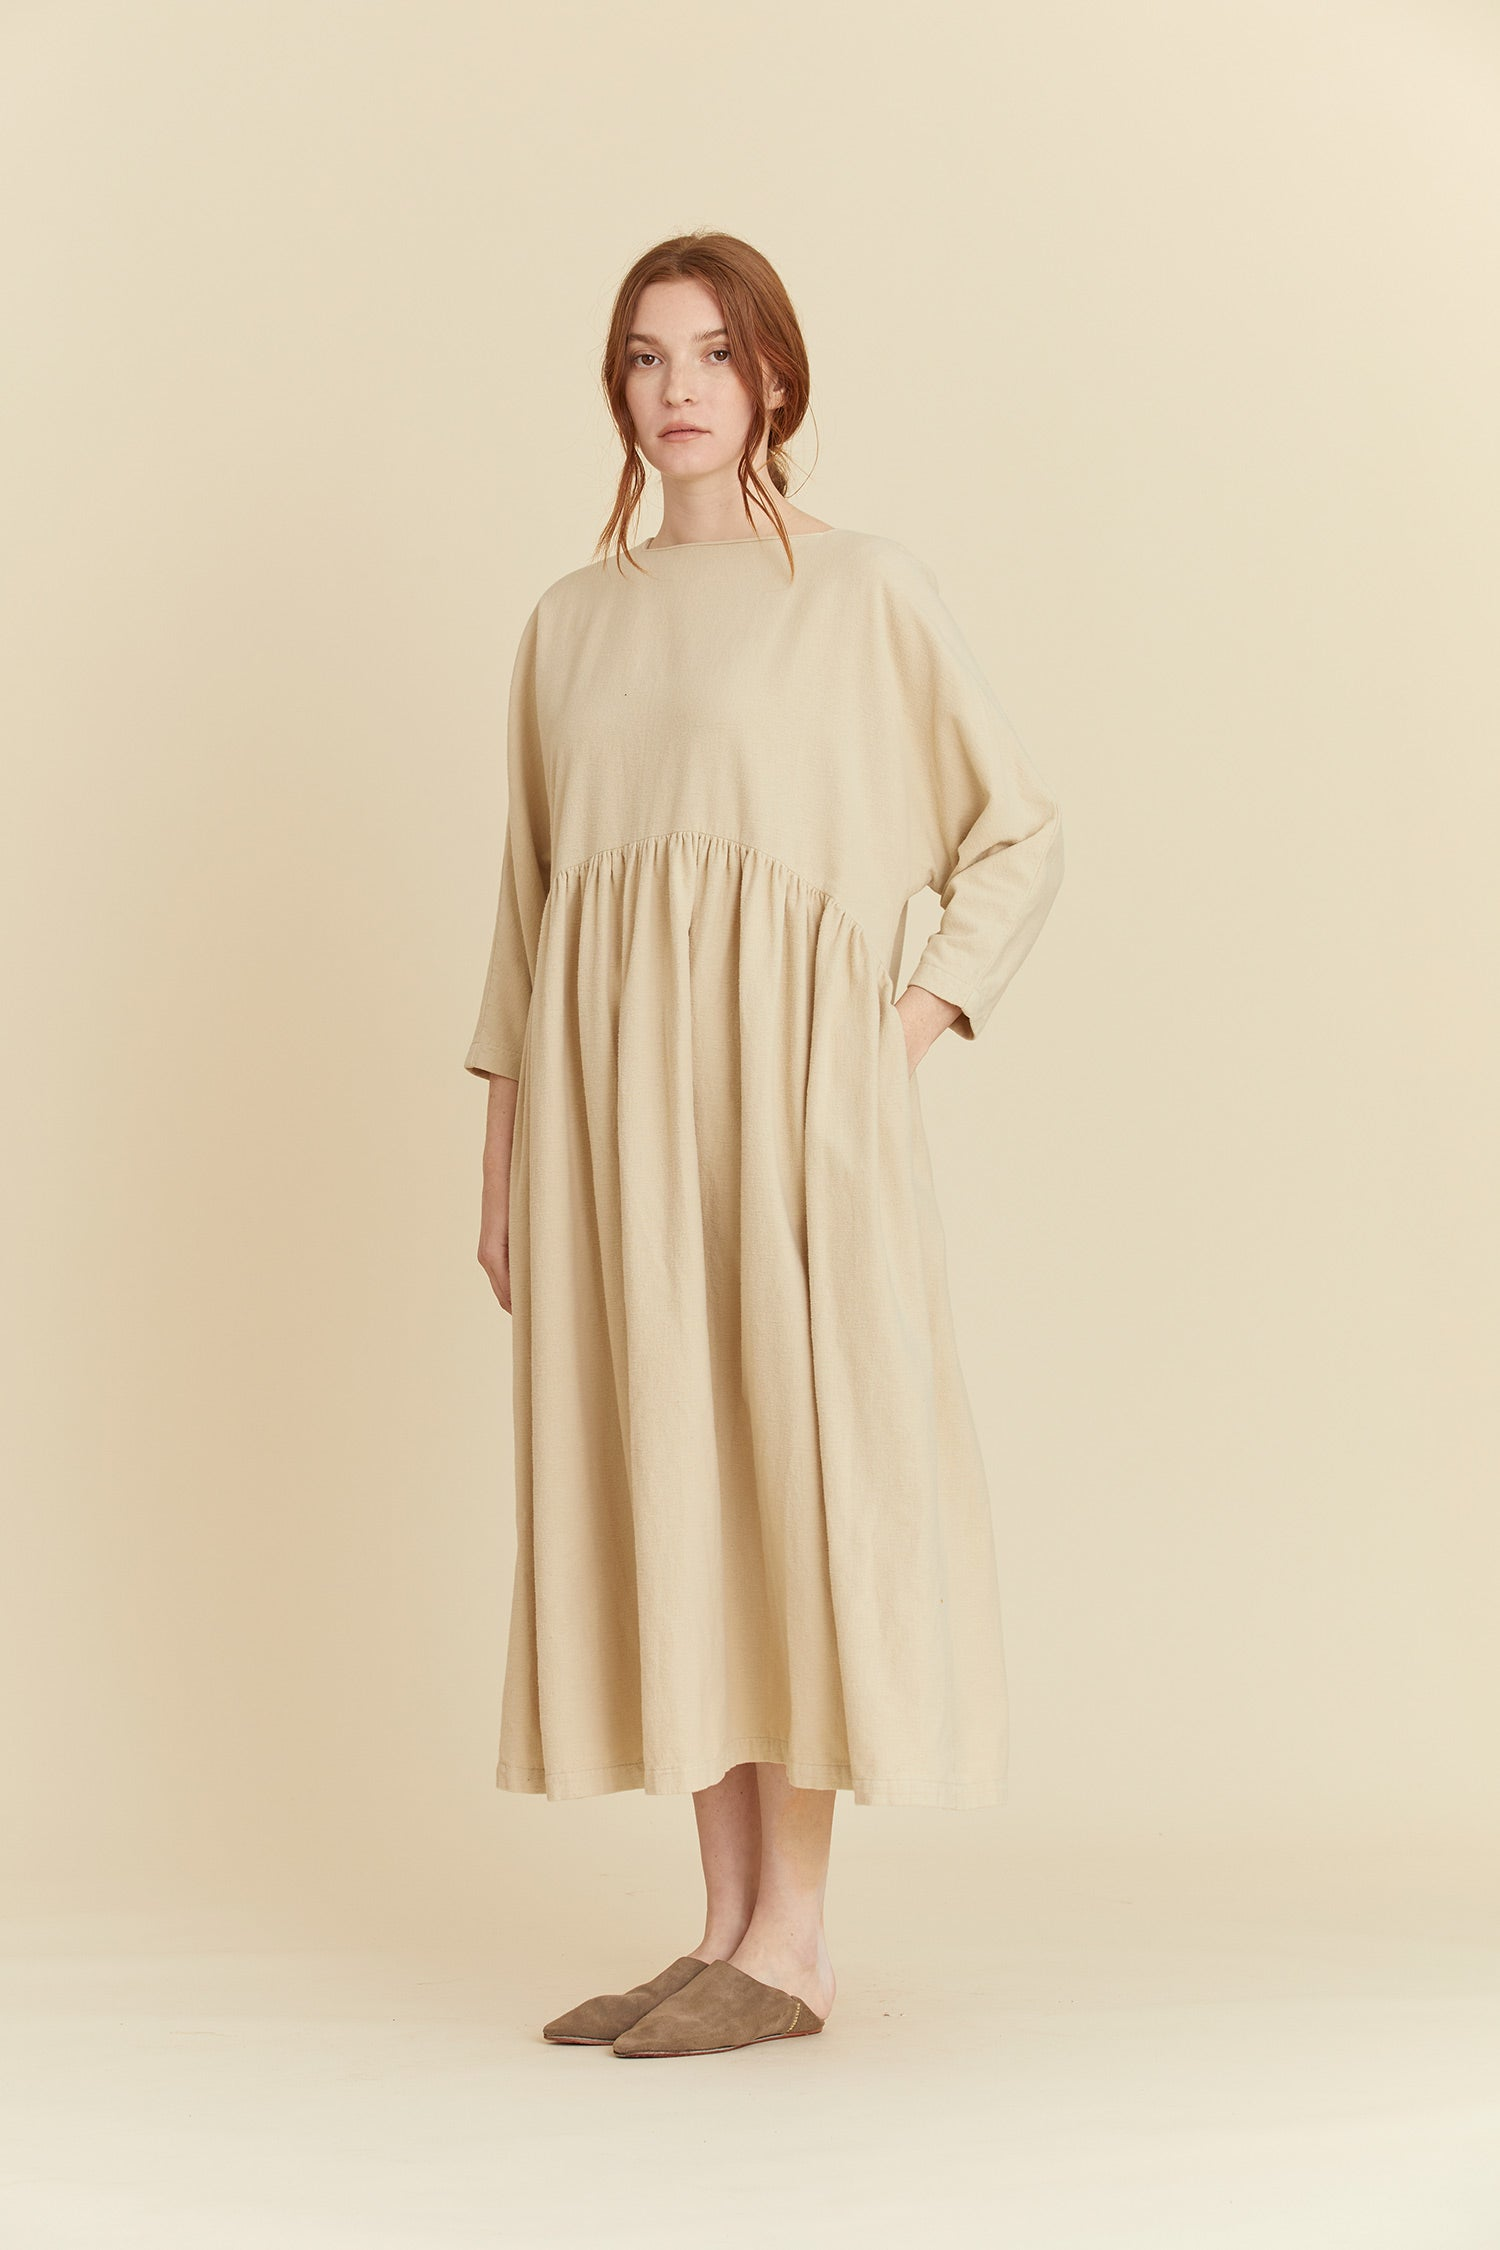 TRADI DRESS / HF-TRD01 / NATURAL